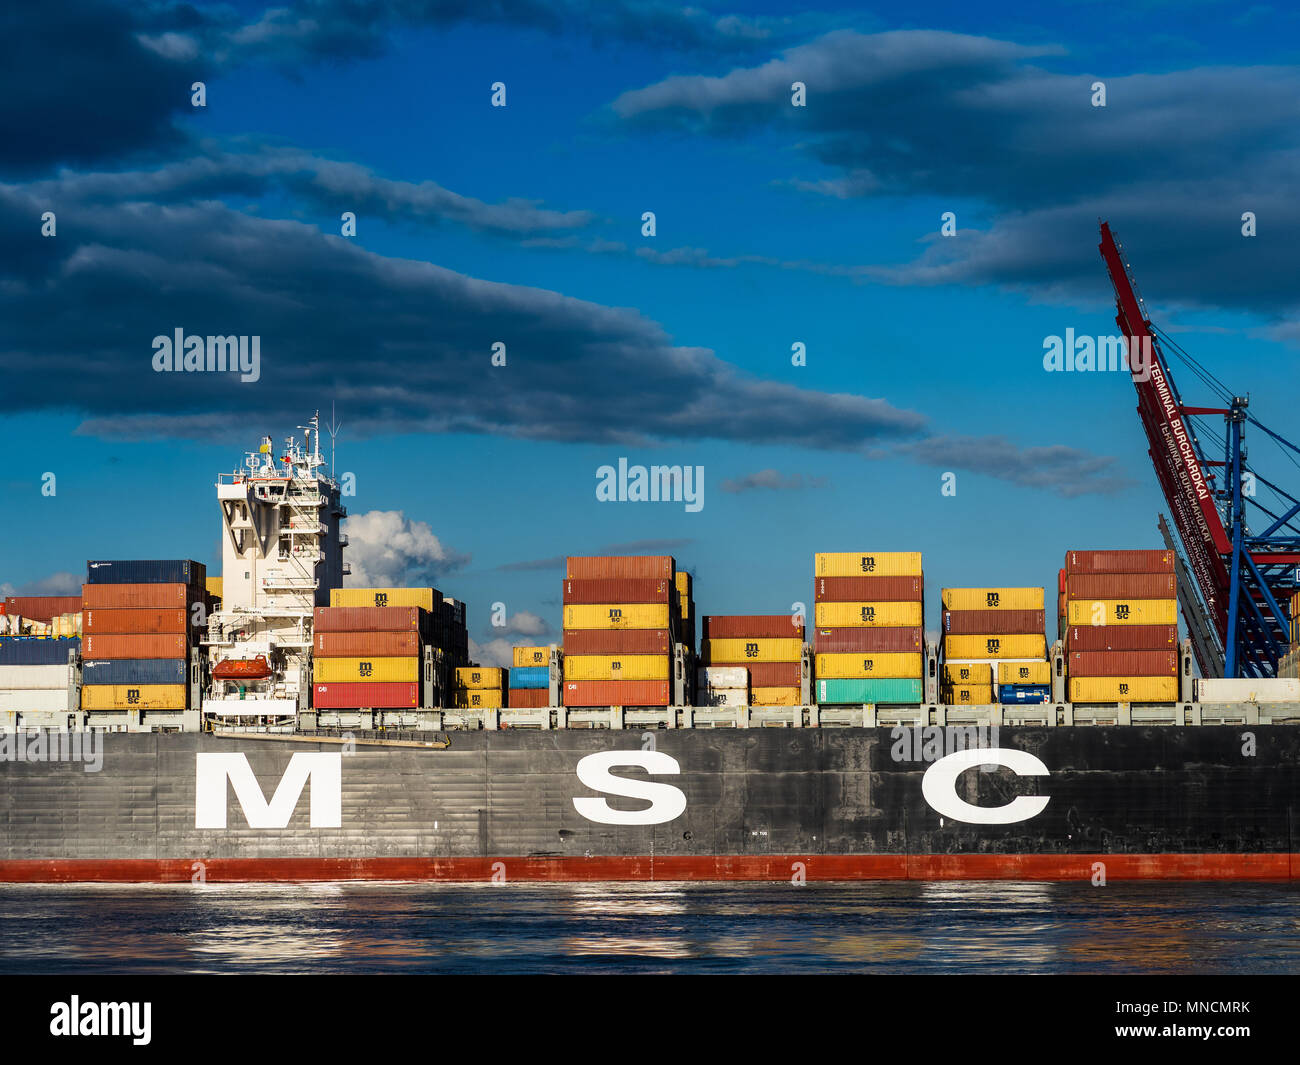 Global Trade World Trade International Trade - containers arrive in Hamburg Port, one of Europe's largest ports on MSC Topaz - Stock Image